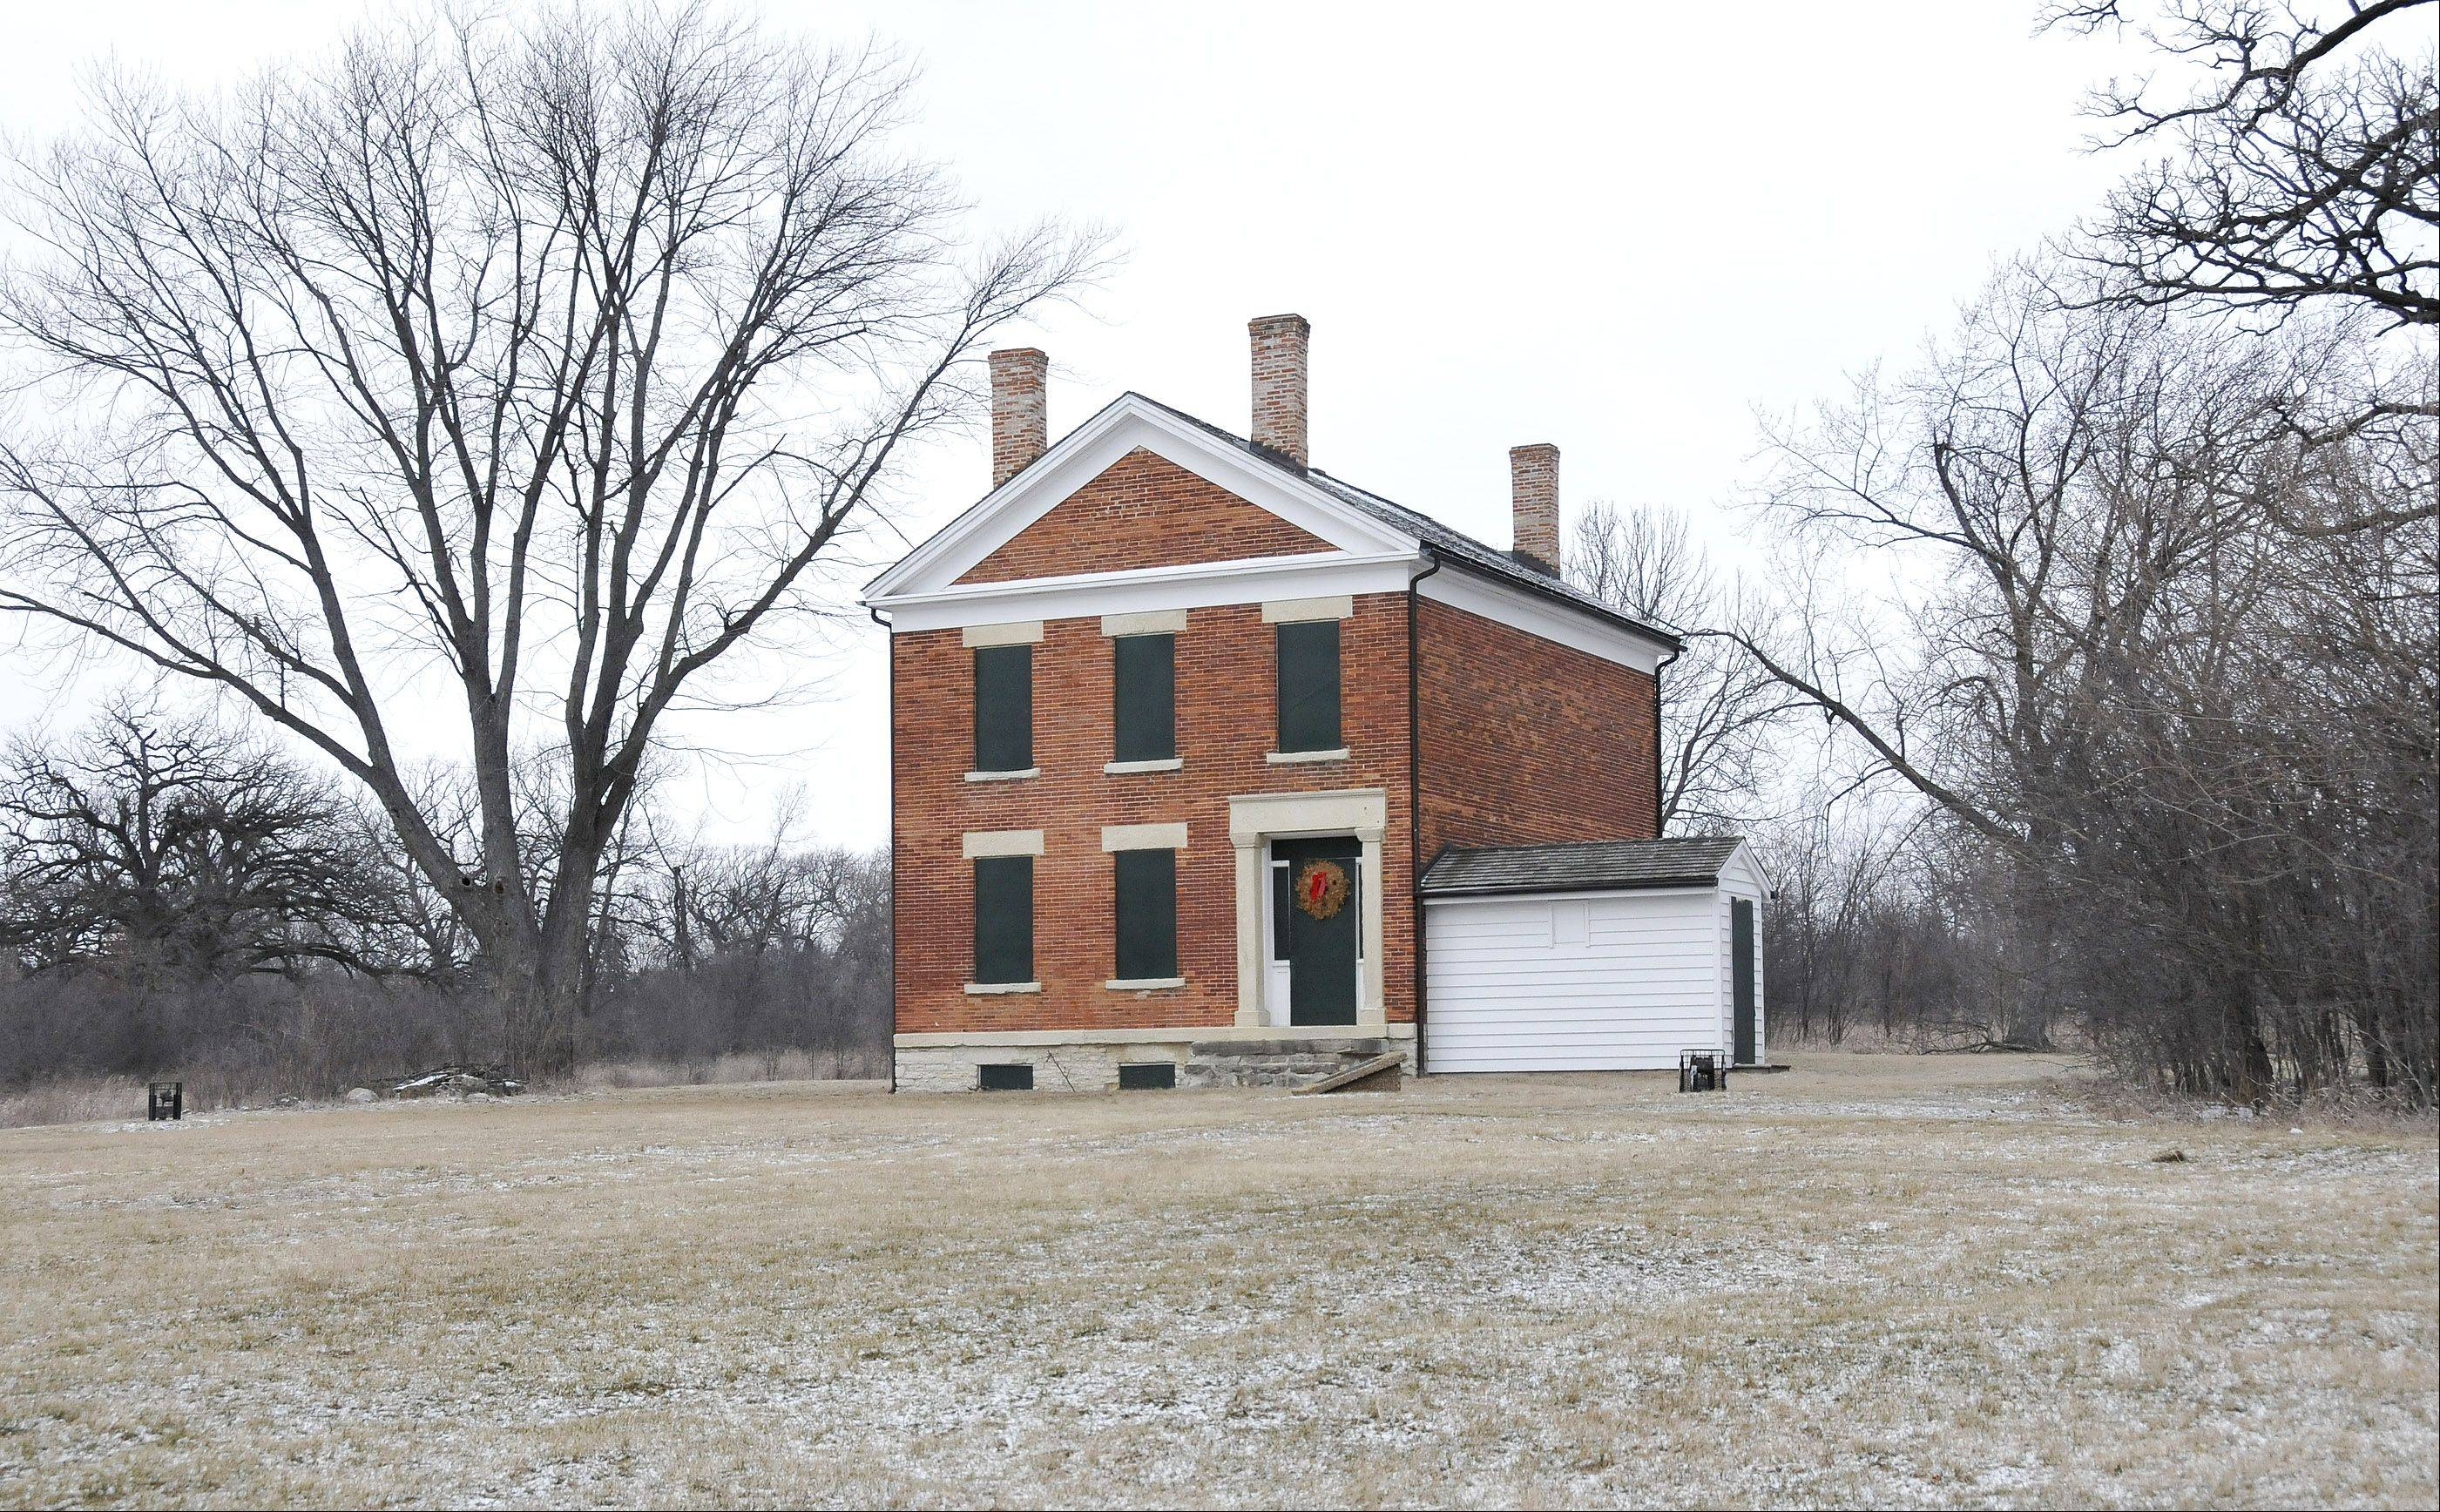 Baker House: Built in the 1840s, the house is believed to be a rare example of Greek Revival architecture in the area and one of the oldest brick homes in DuPage. Preservationists saved the home from disrepai